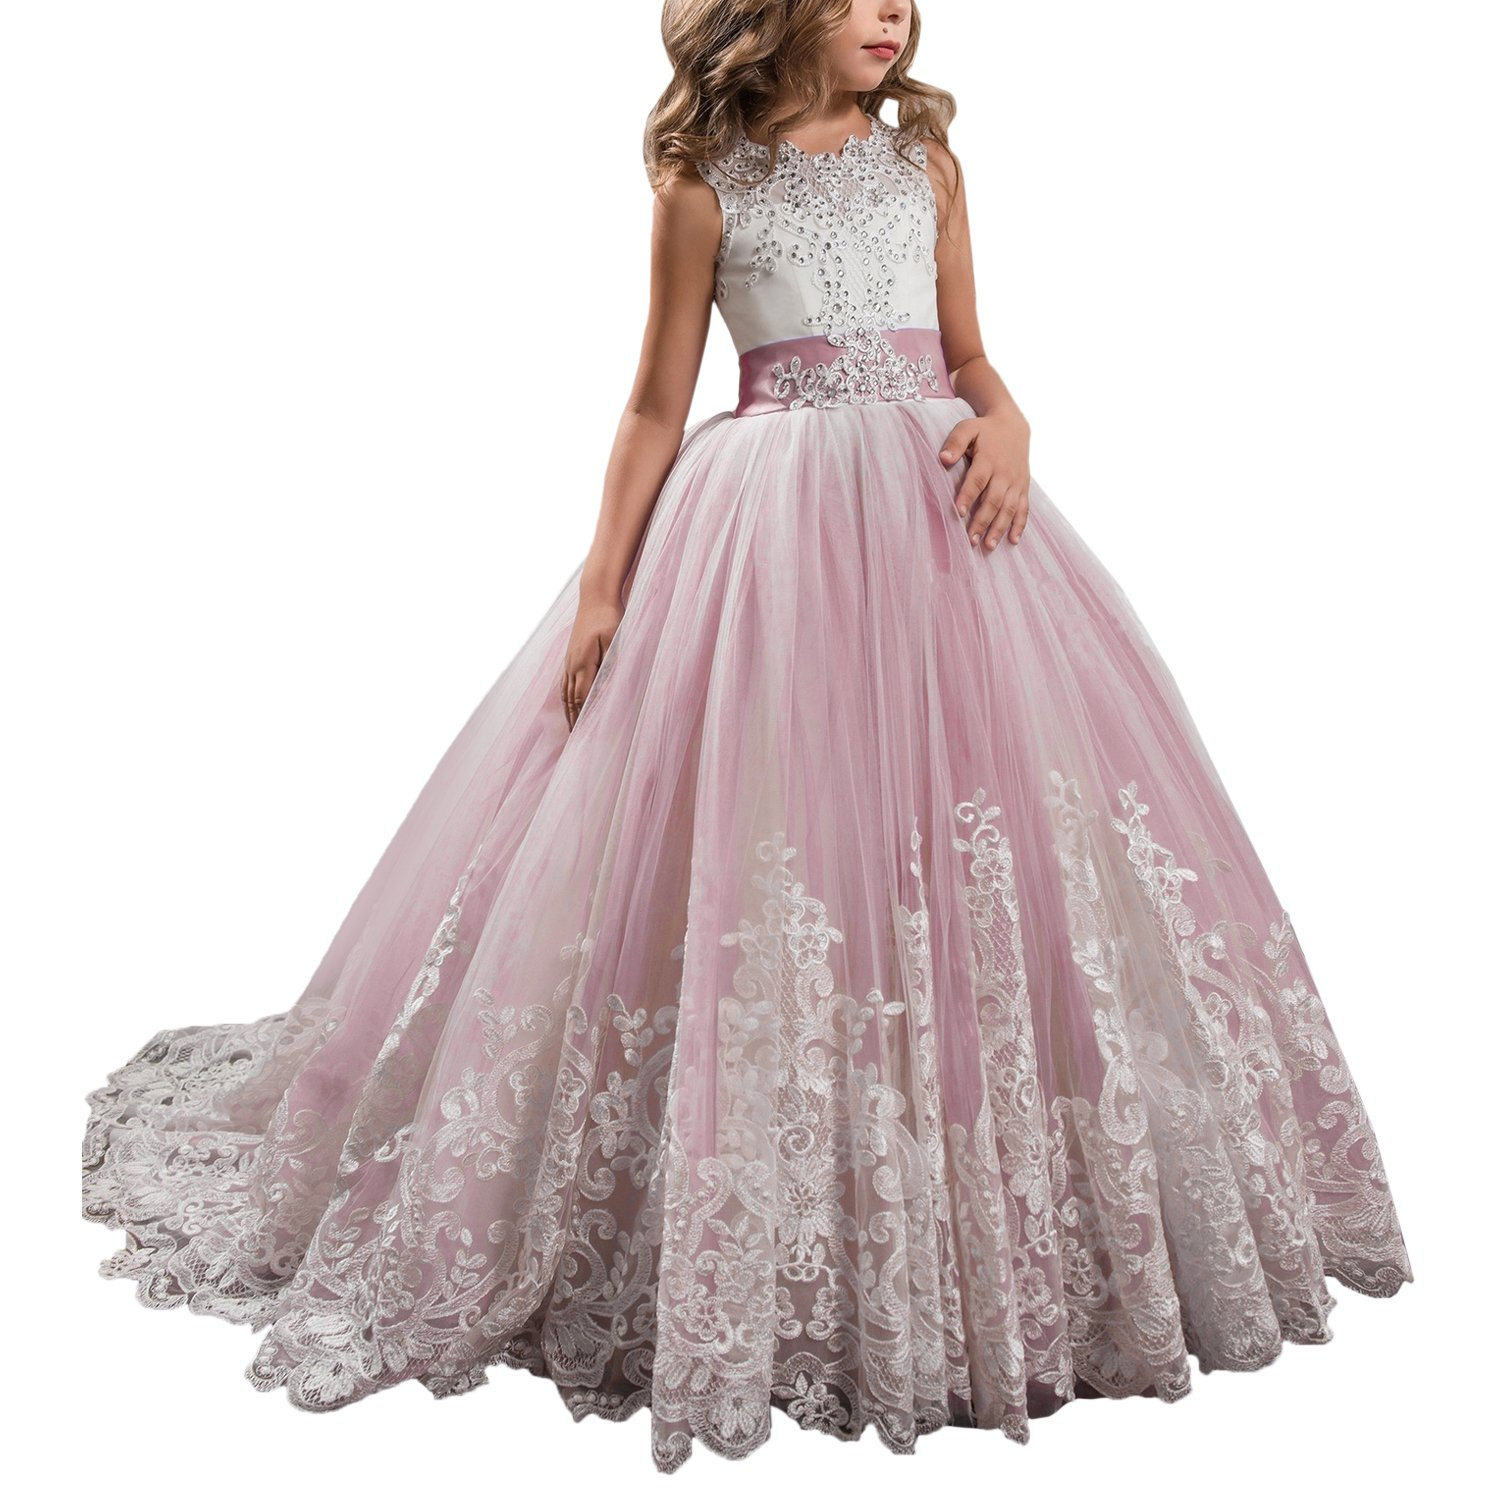 Princess Lilac Long Girls Pageant Dresses Kids Prom Puffy Tulle Ball Gown by Wde